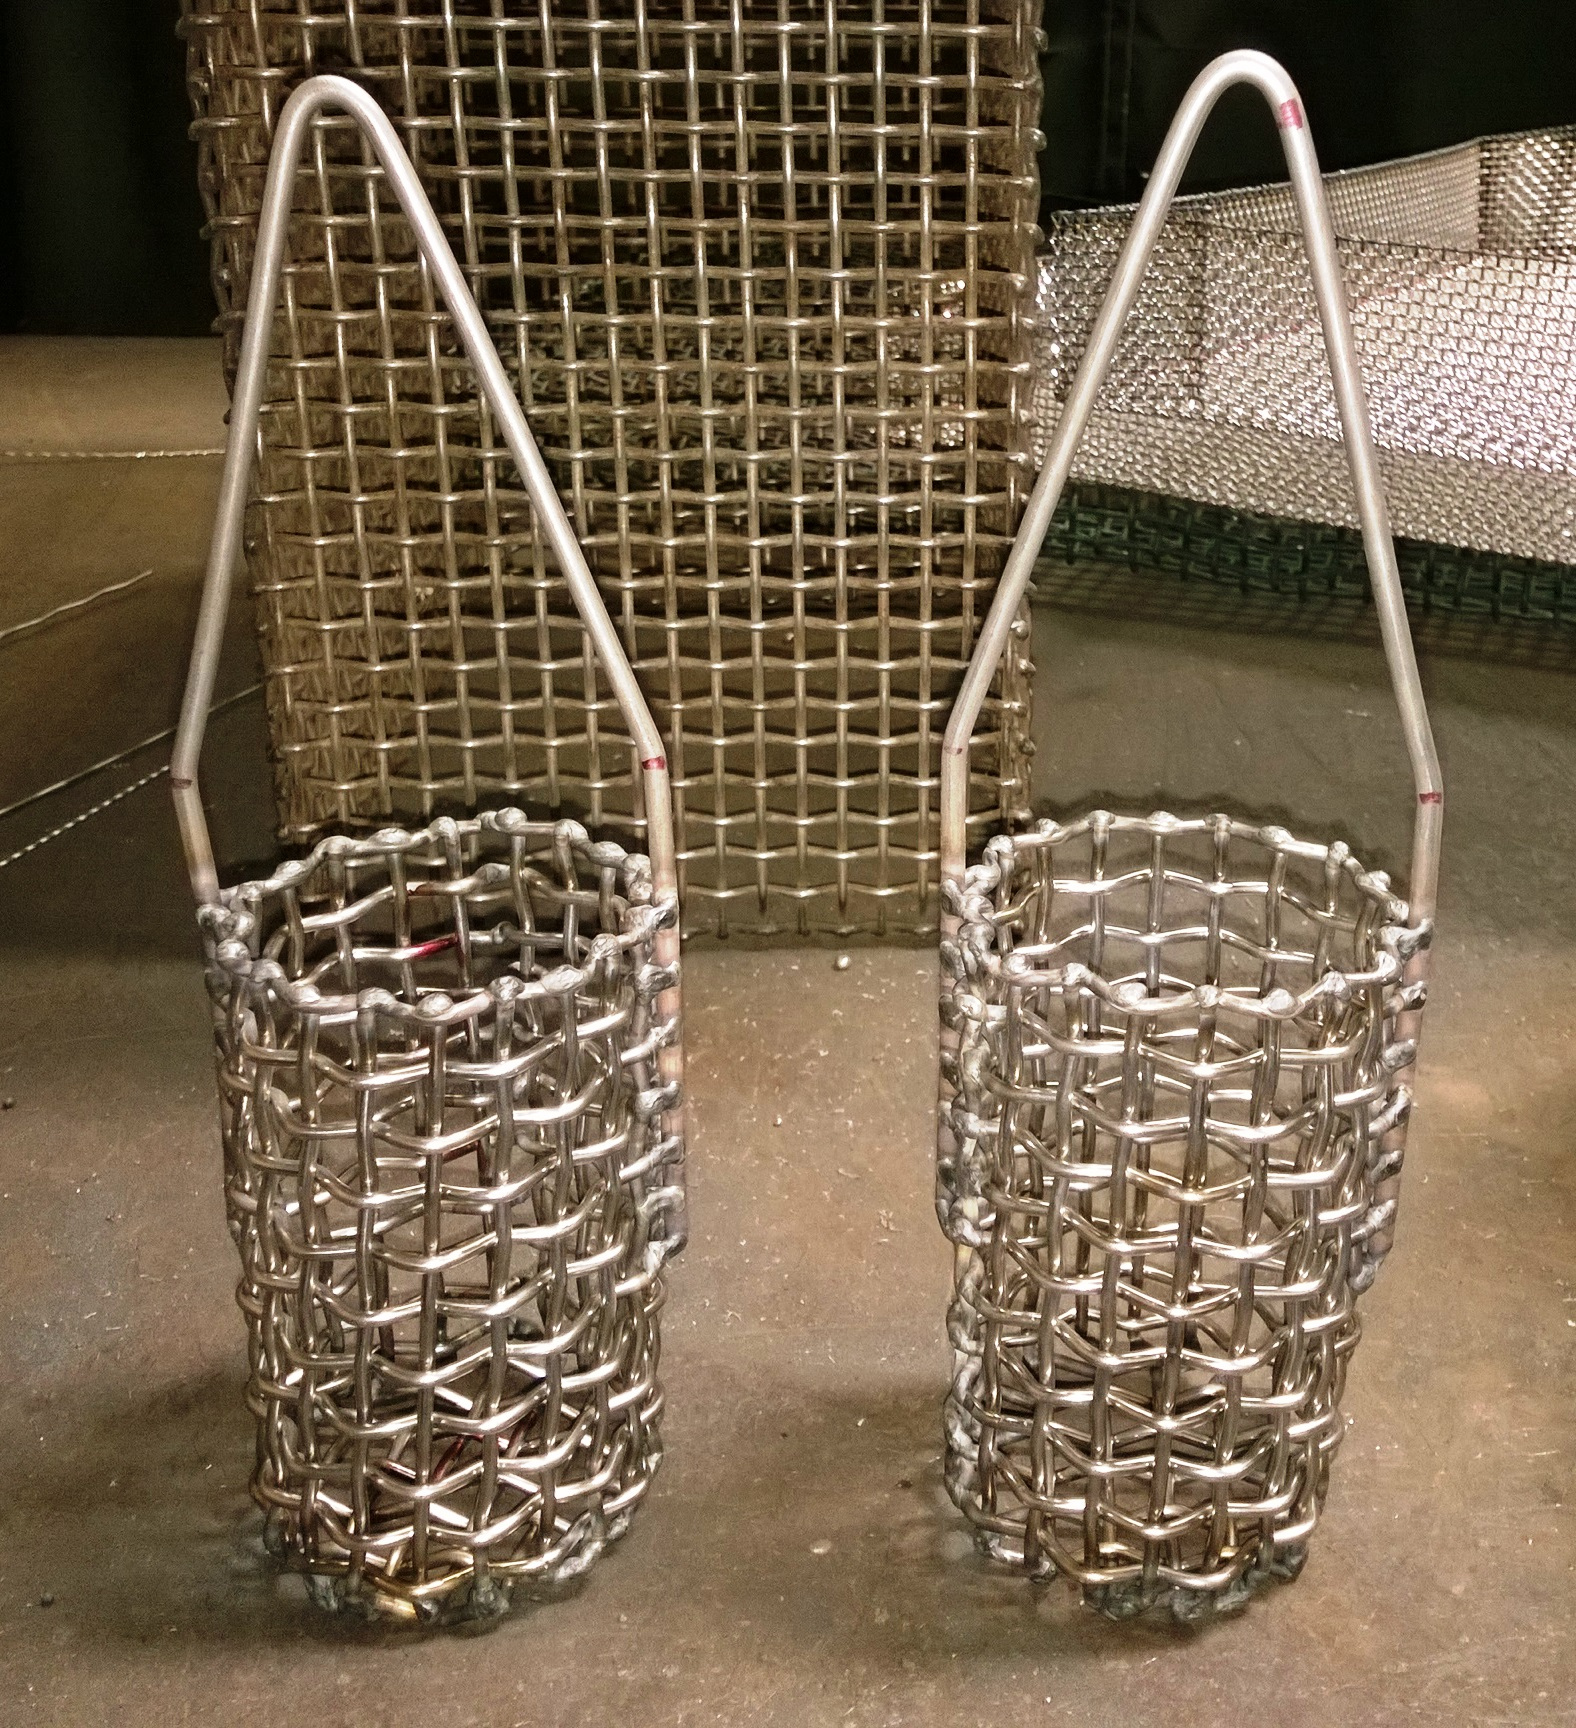 Basket Weaving Supply Companies : Parts washing mesh baskets weave alloy